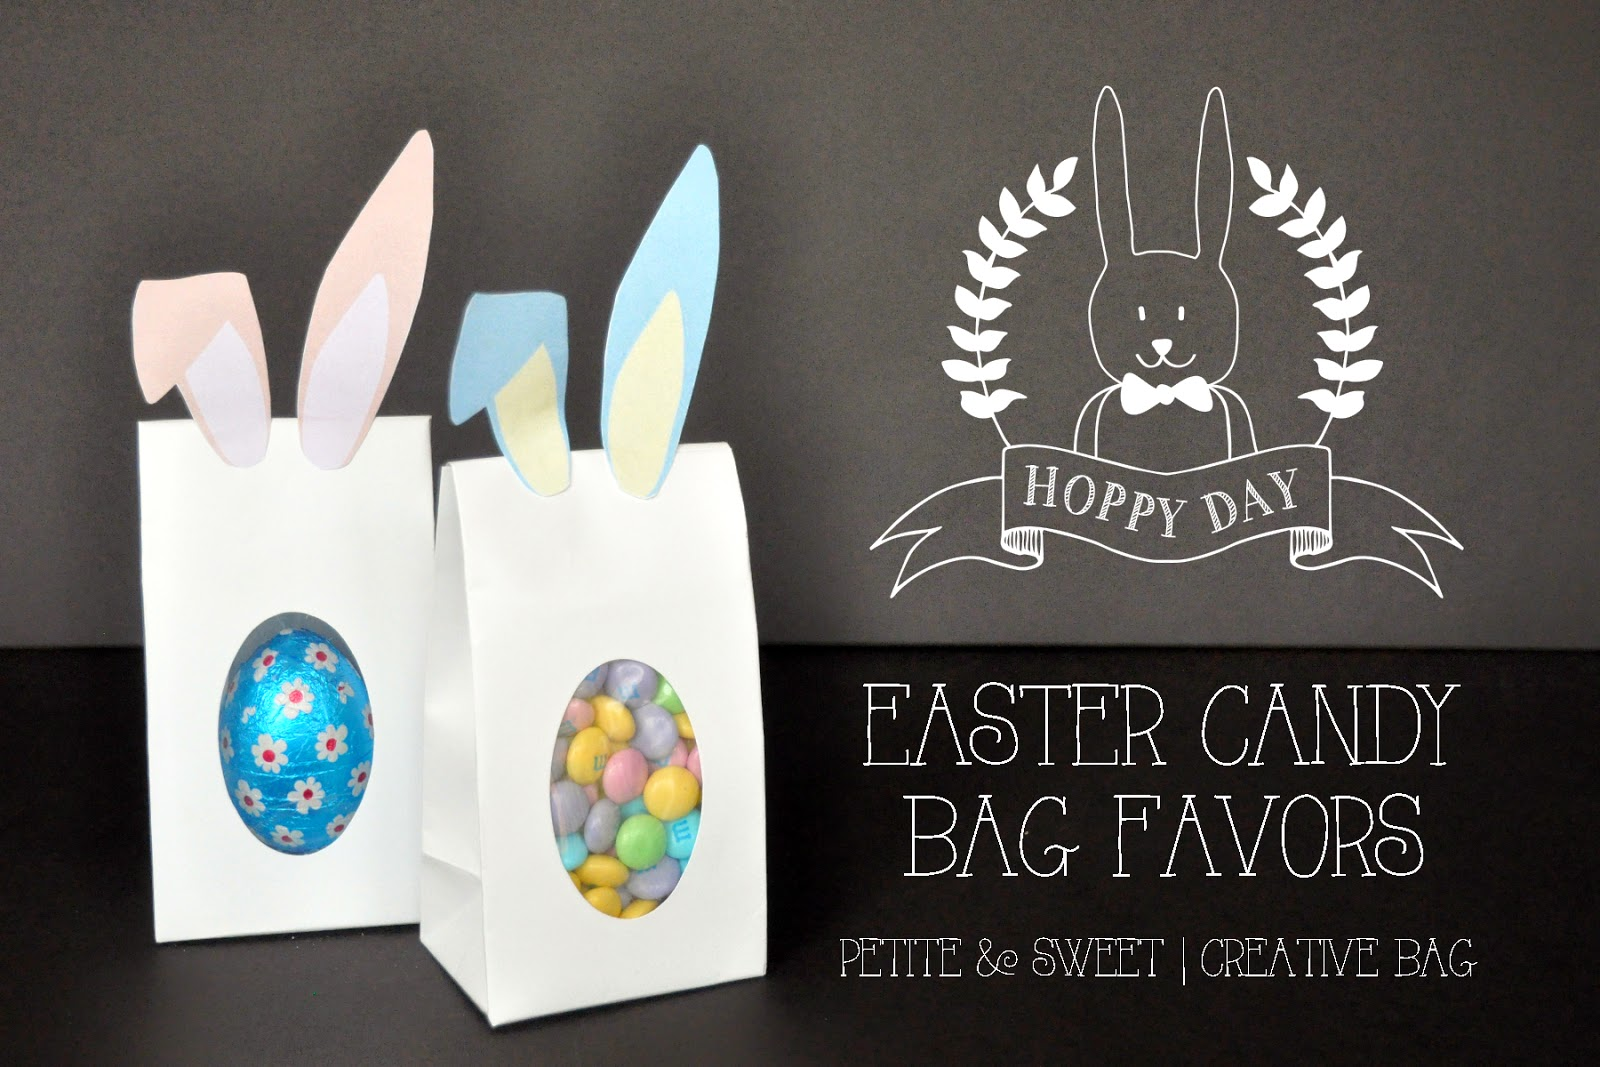 Easter candy bag favors and free download | Creative Bag |Petite & Sweet